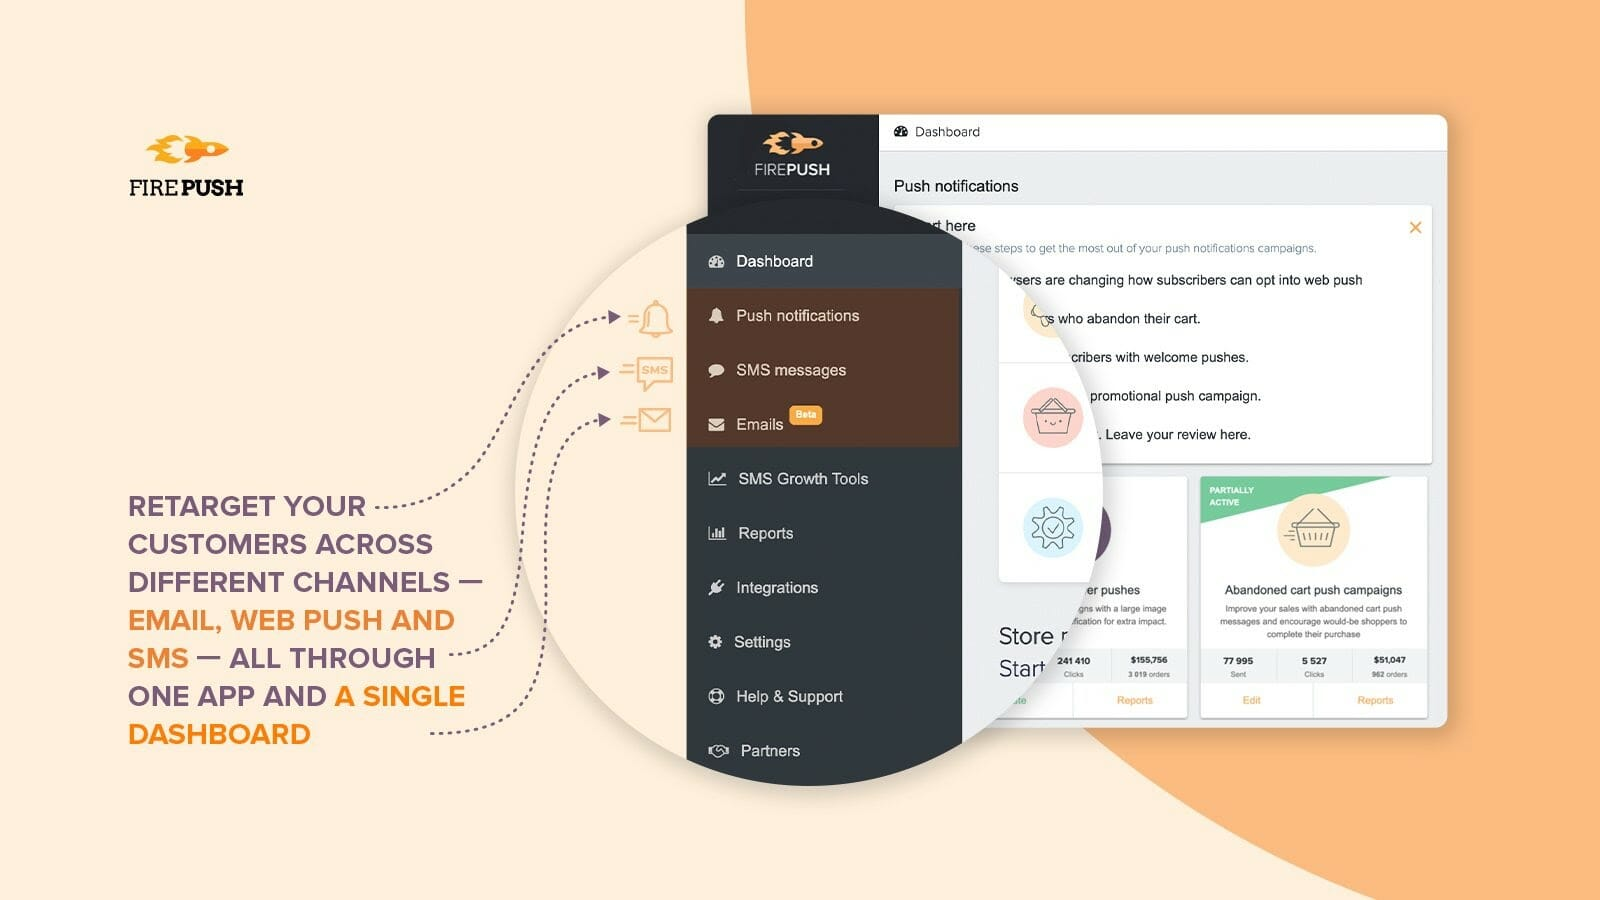 Firepush retargeting custome application with SMS, Emails and Web pushes